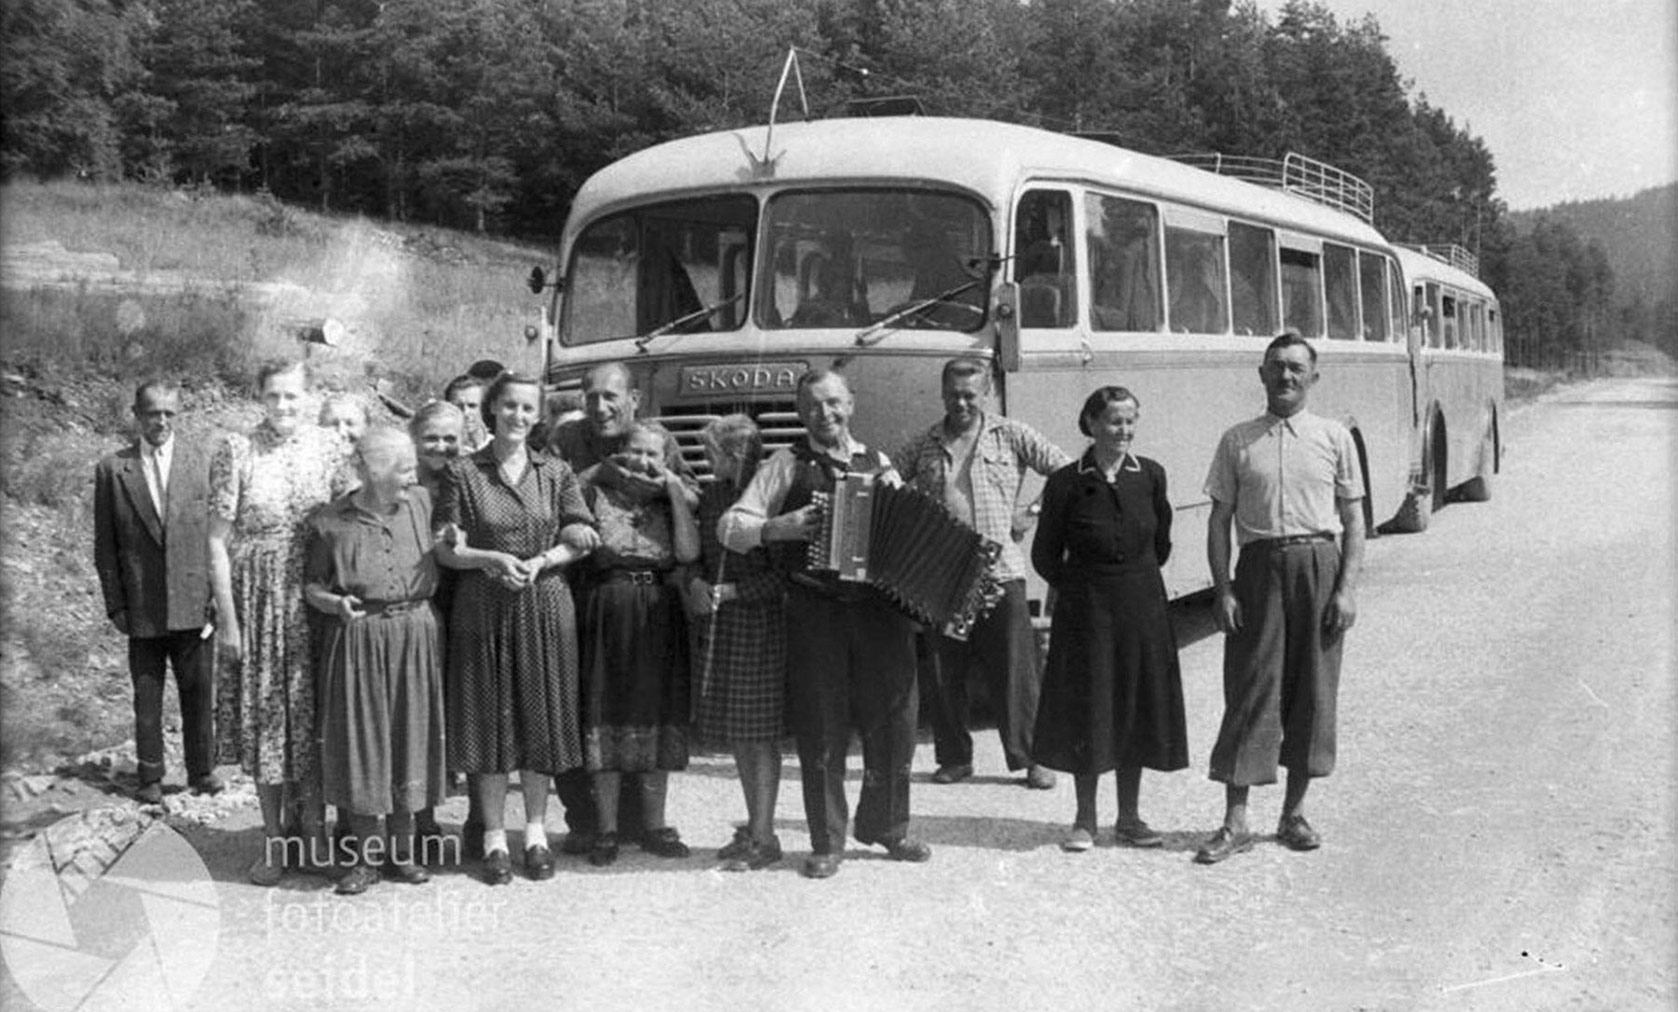 People in front of an old Škoda bus